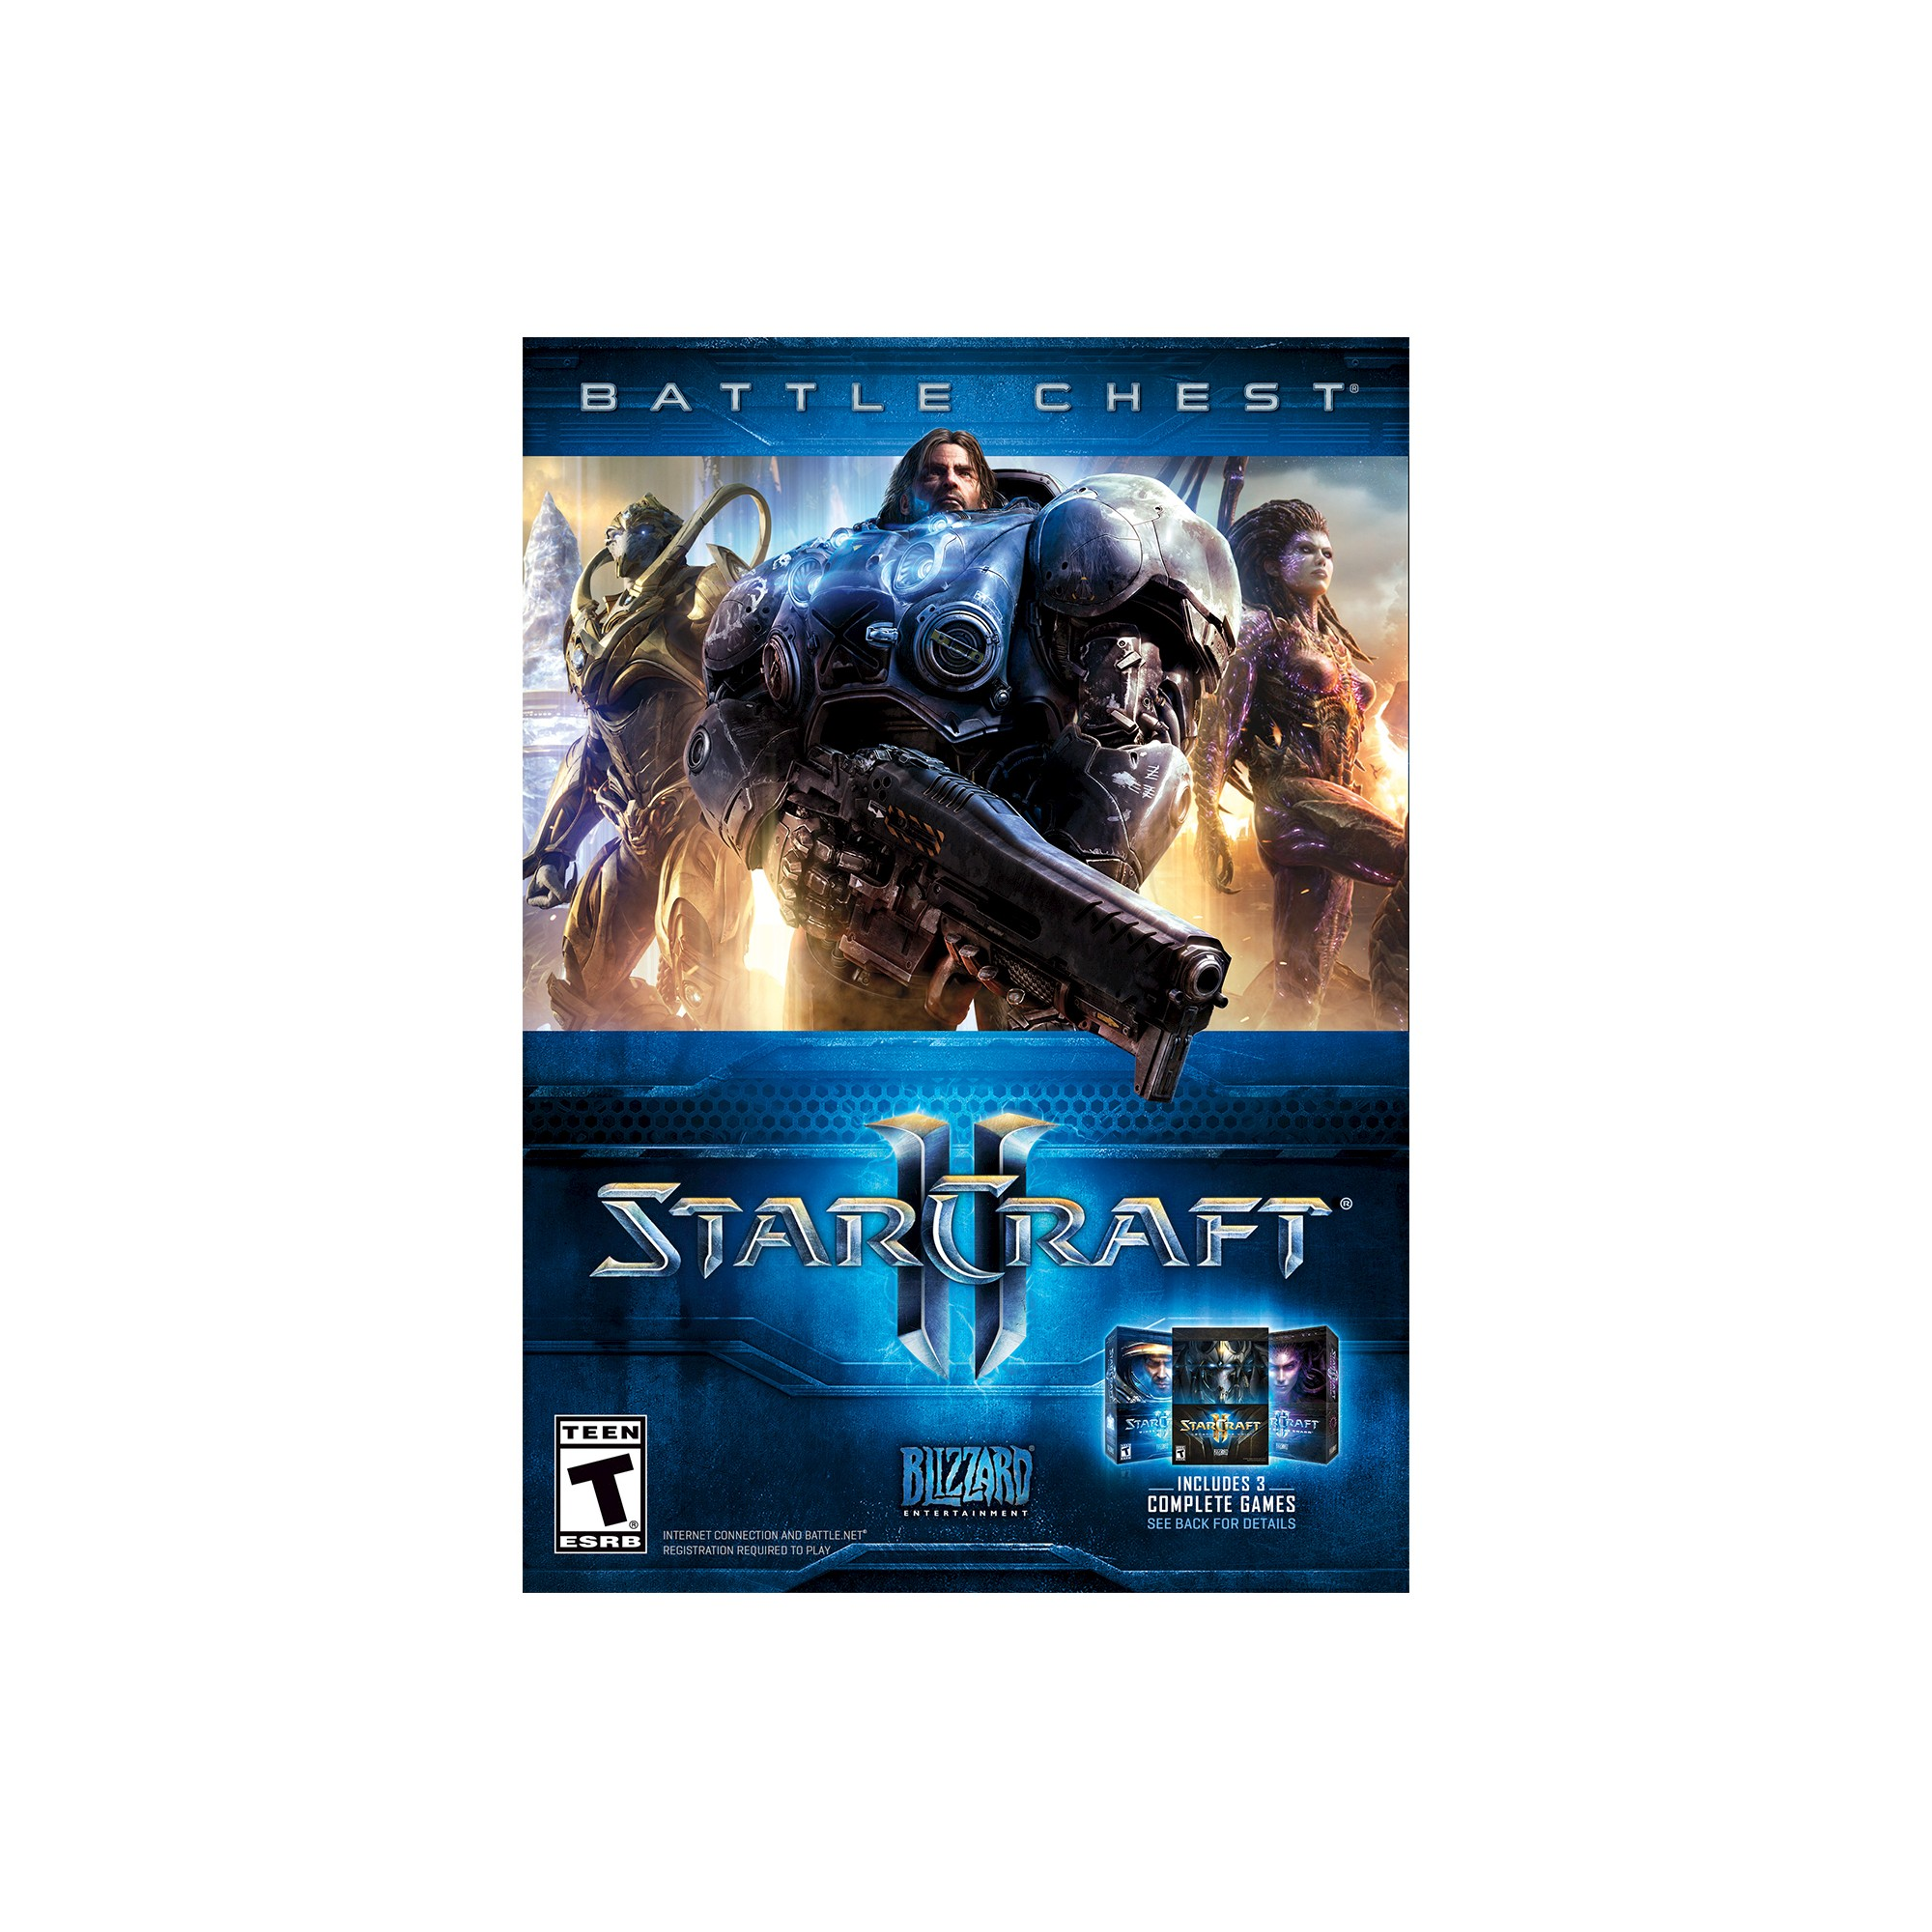 Starcraft Ii Battle Chest Pc Game Your Turn